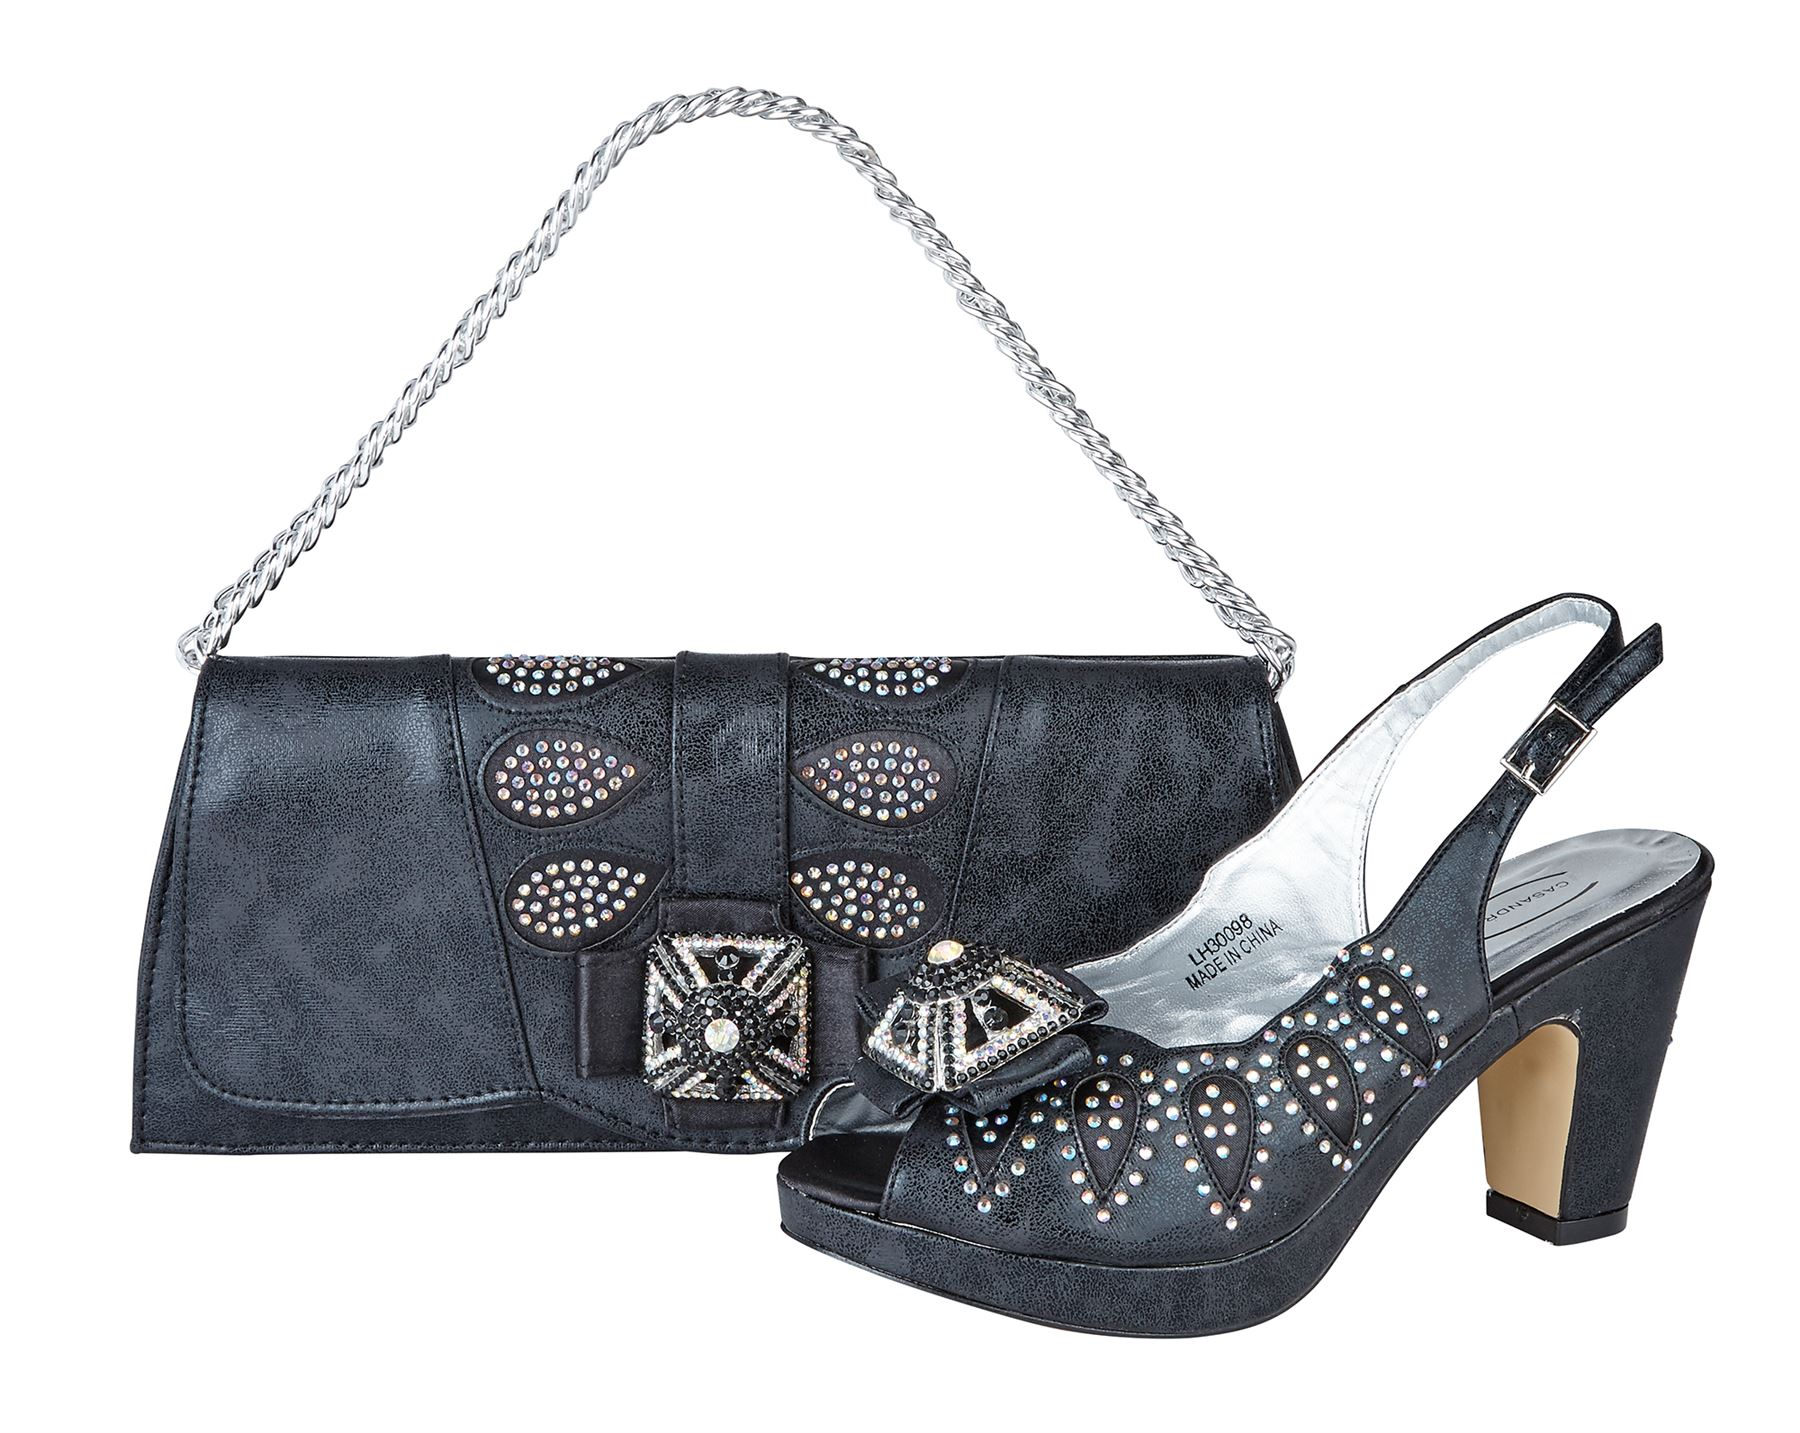 Amazing Shoes With Matching Handbags From China Shoes With Matching Handbags